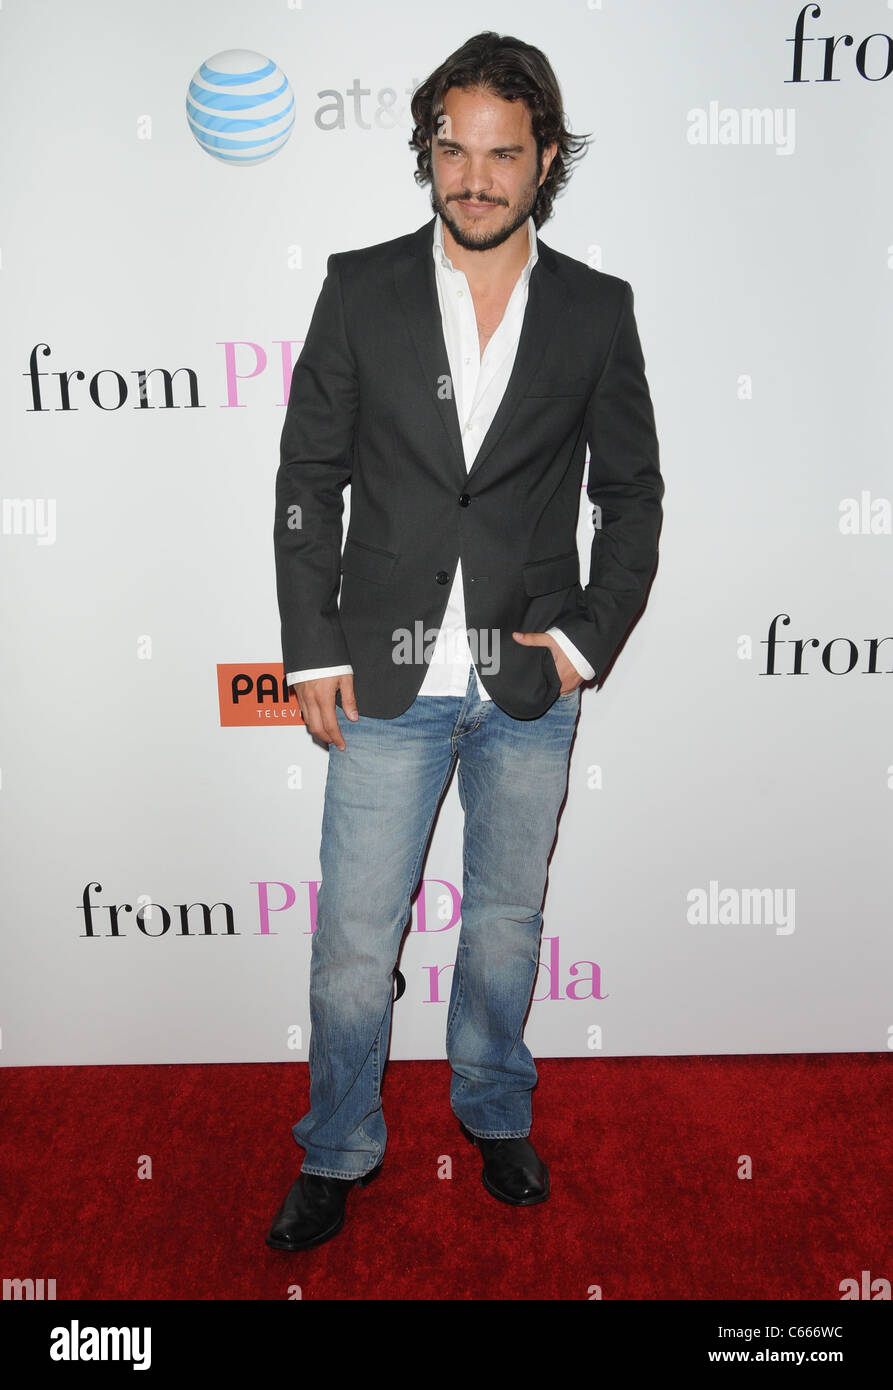 Kuno Becker at arrivals for FROM PRADA TO NADA Premiere, LA Live Regal Cinemas Premiere, Los Angeles, CA January Stock Photo